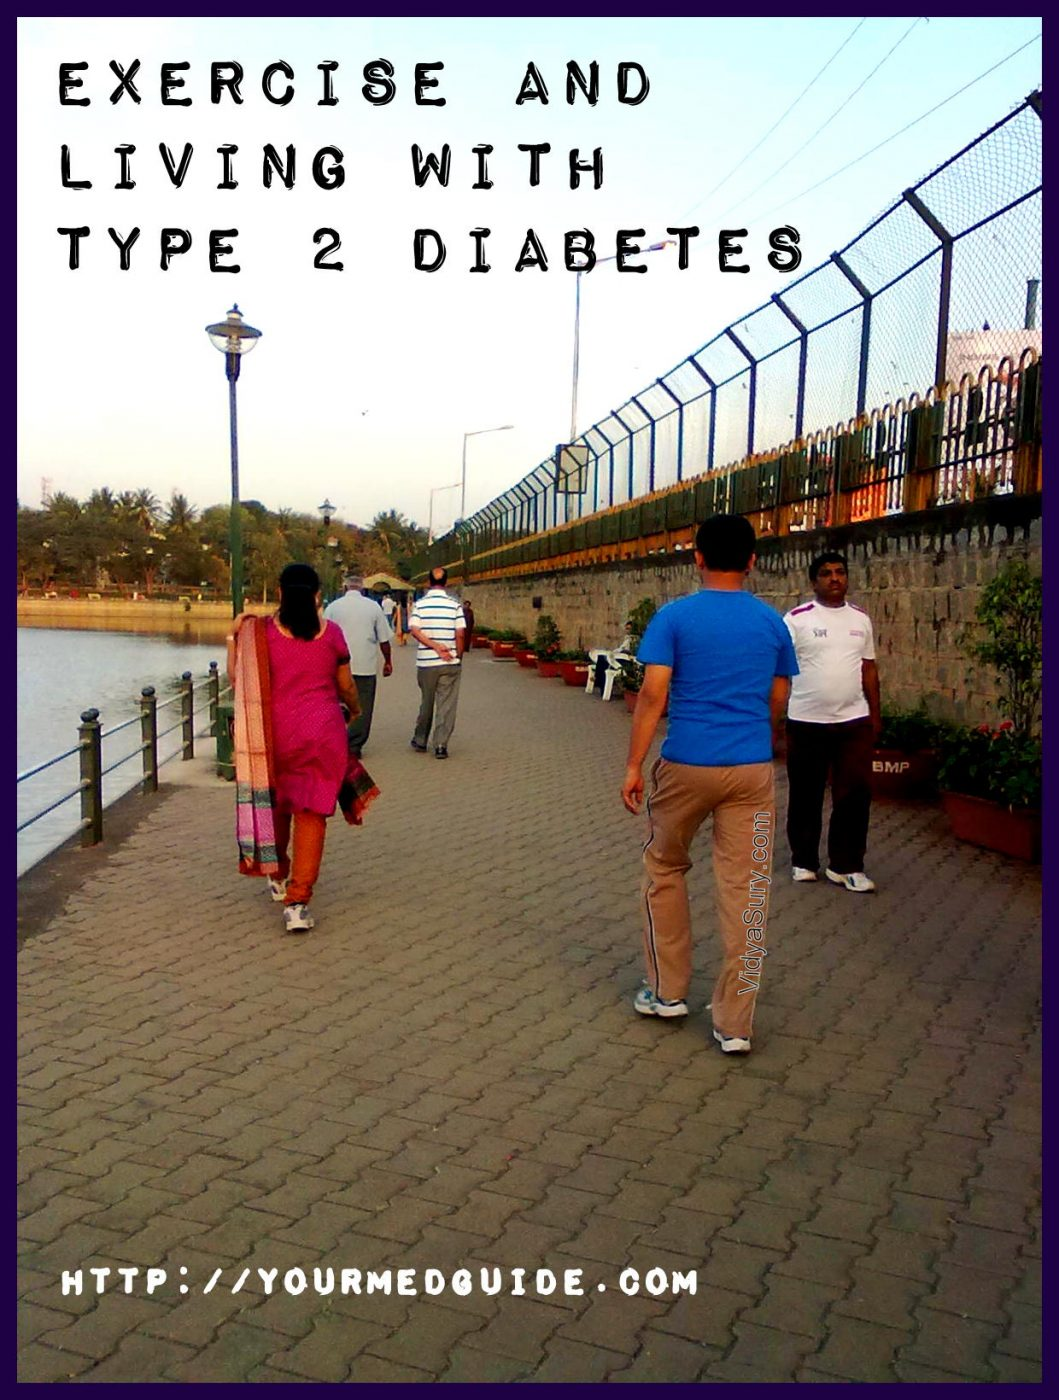 exercise and living with type 2 diabetes